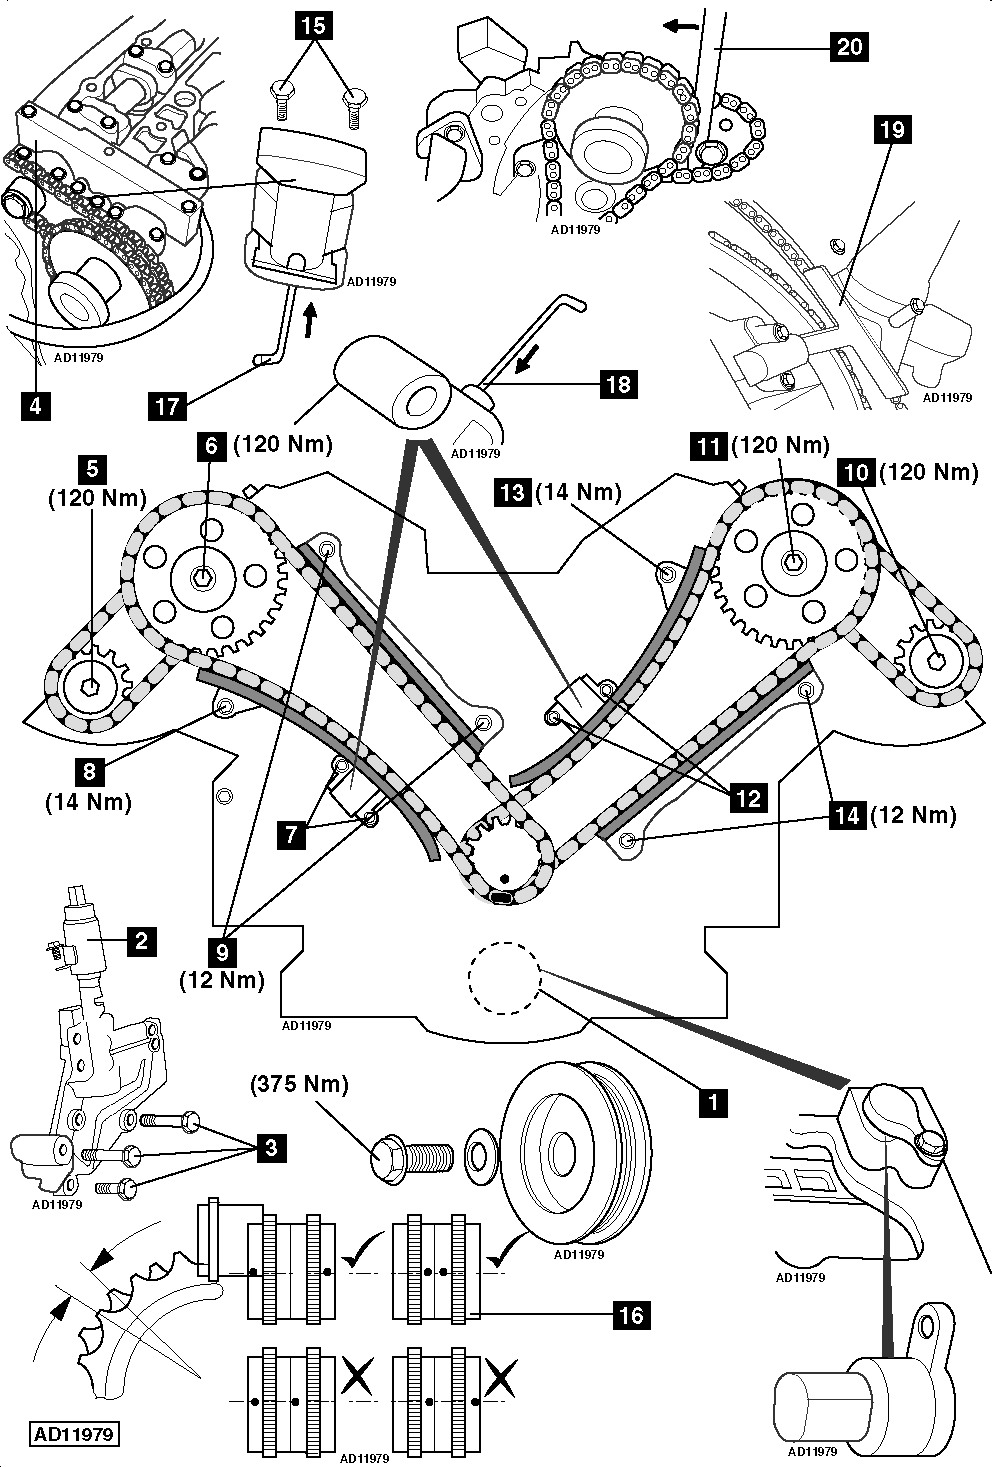 Ford 4 0 Firing Order 2005 Freestar Questions 2002 Jaguar S Type Wiring Diagram 1998 Timing Basic Guide